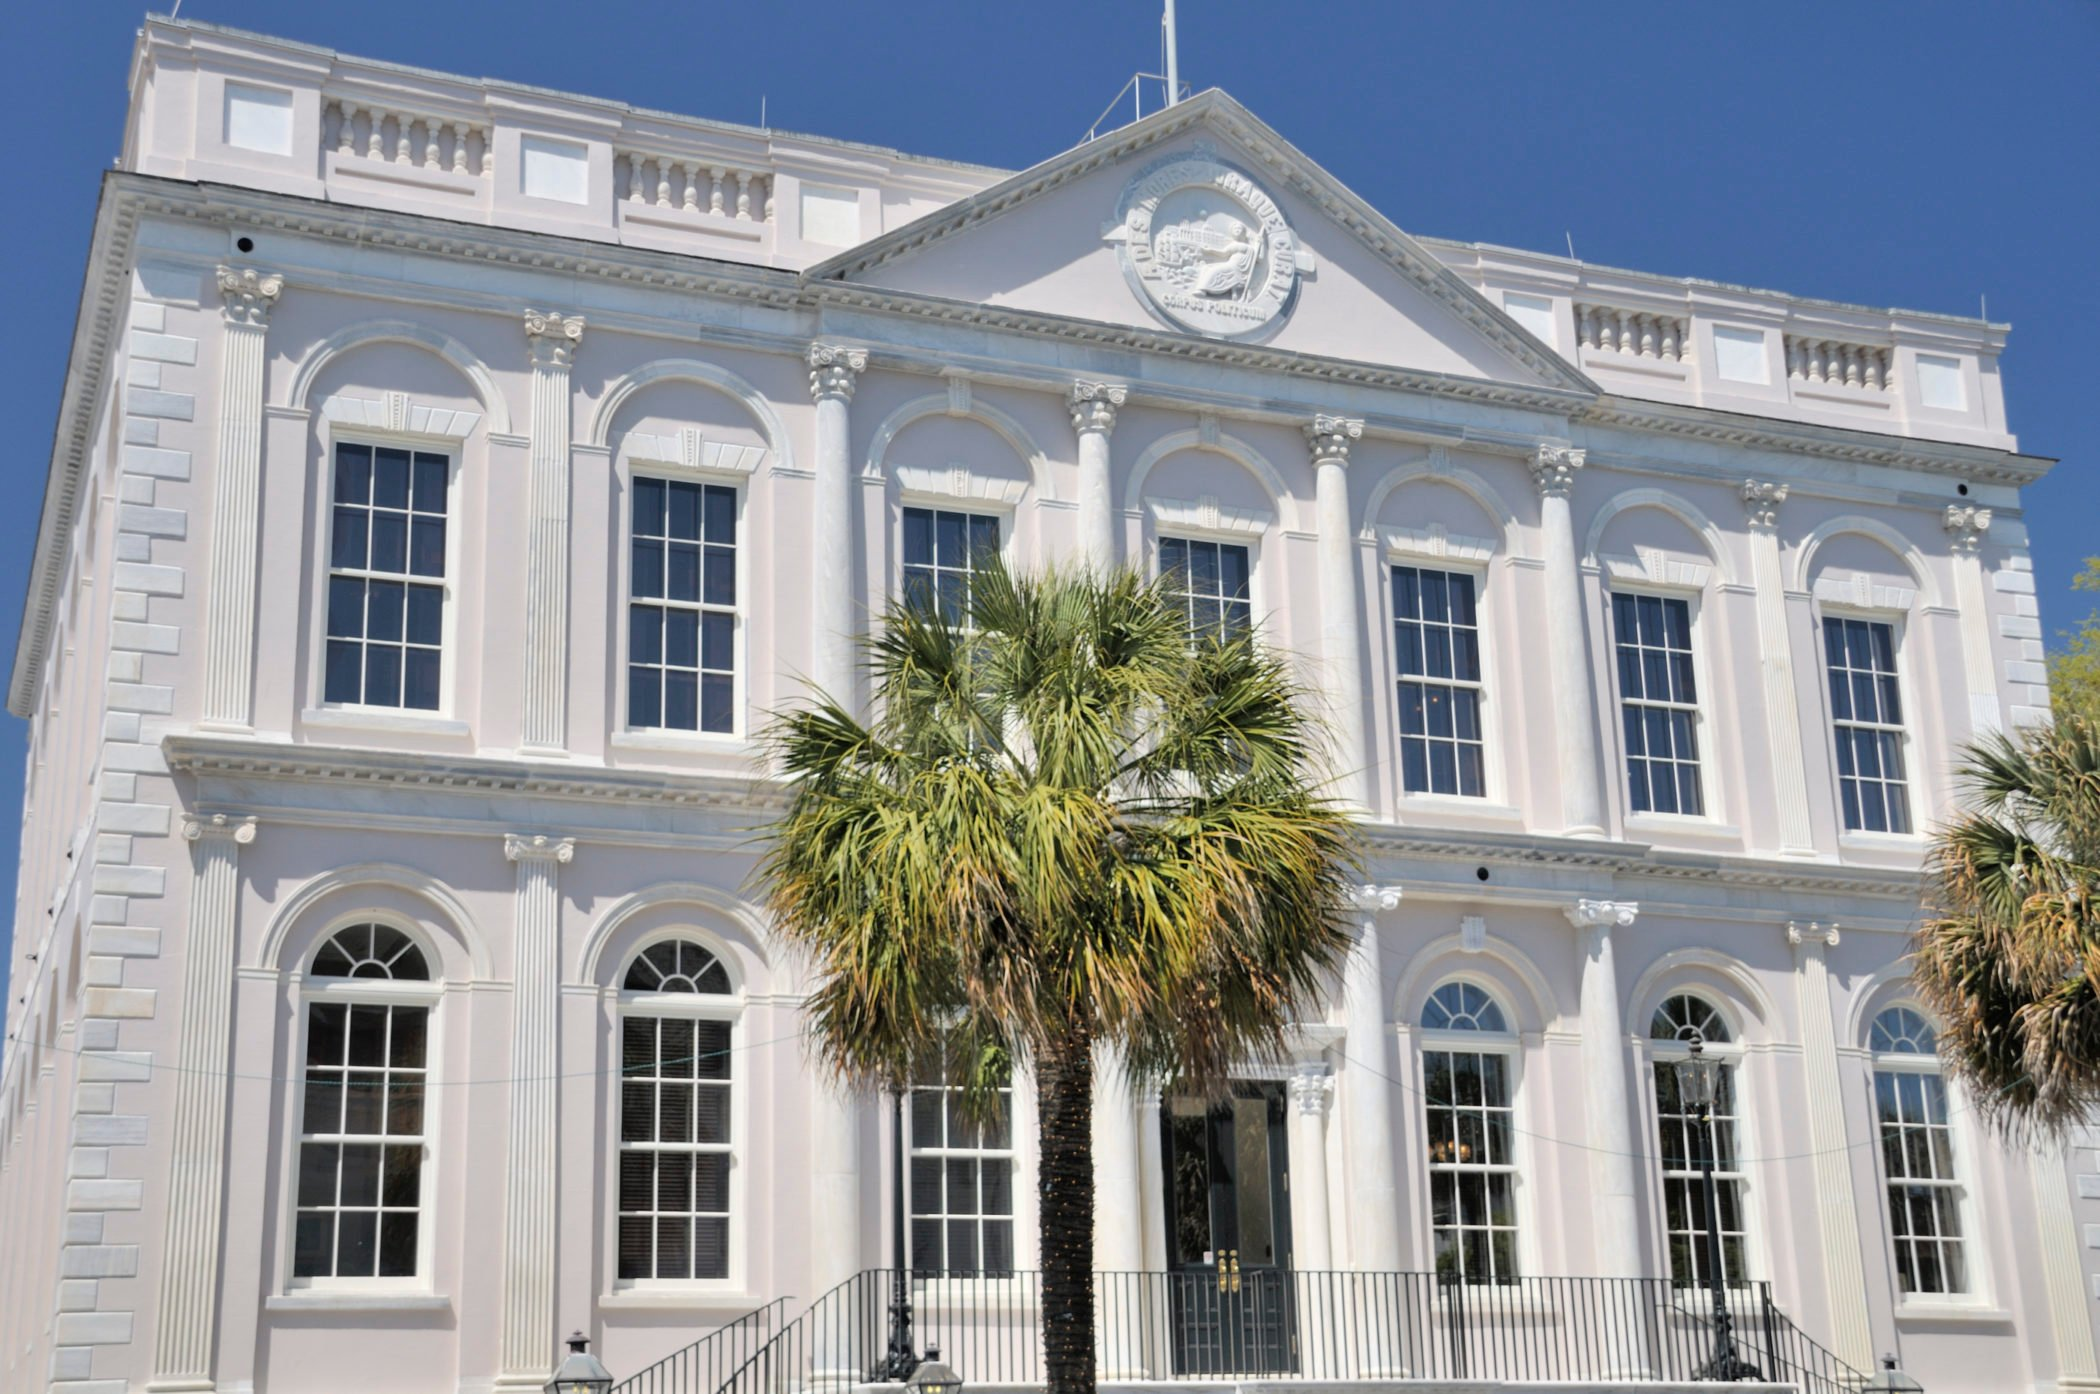 FITSNews – Town Of Mount Pleasant SC Sues Three Charleston-Based Media Outlets